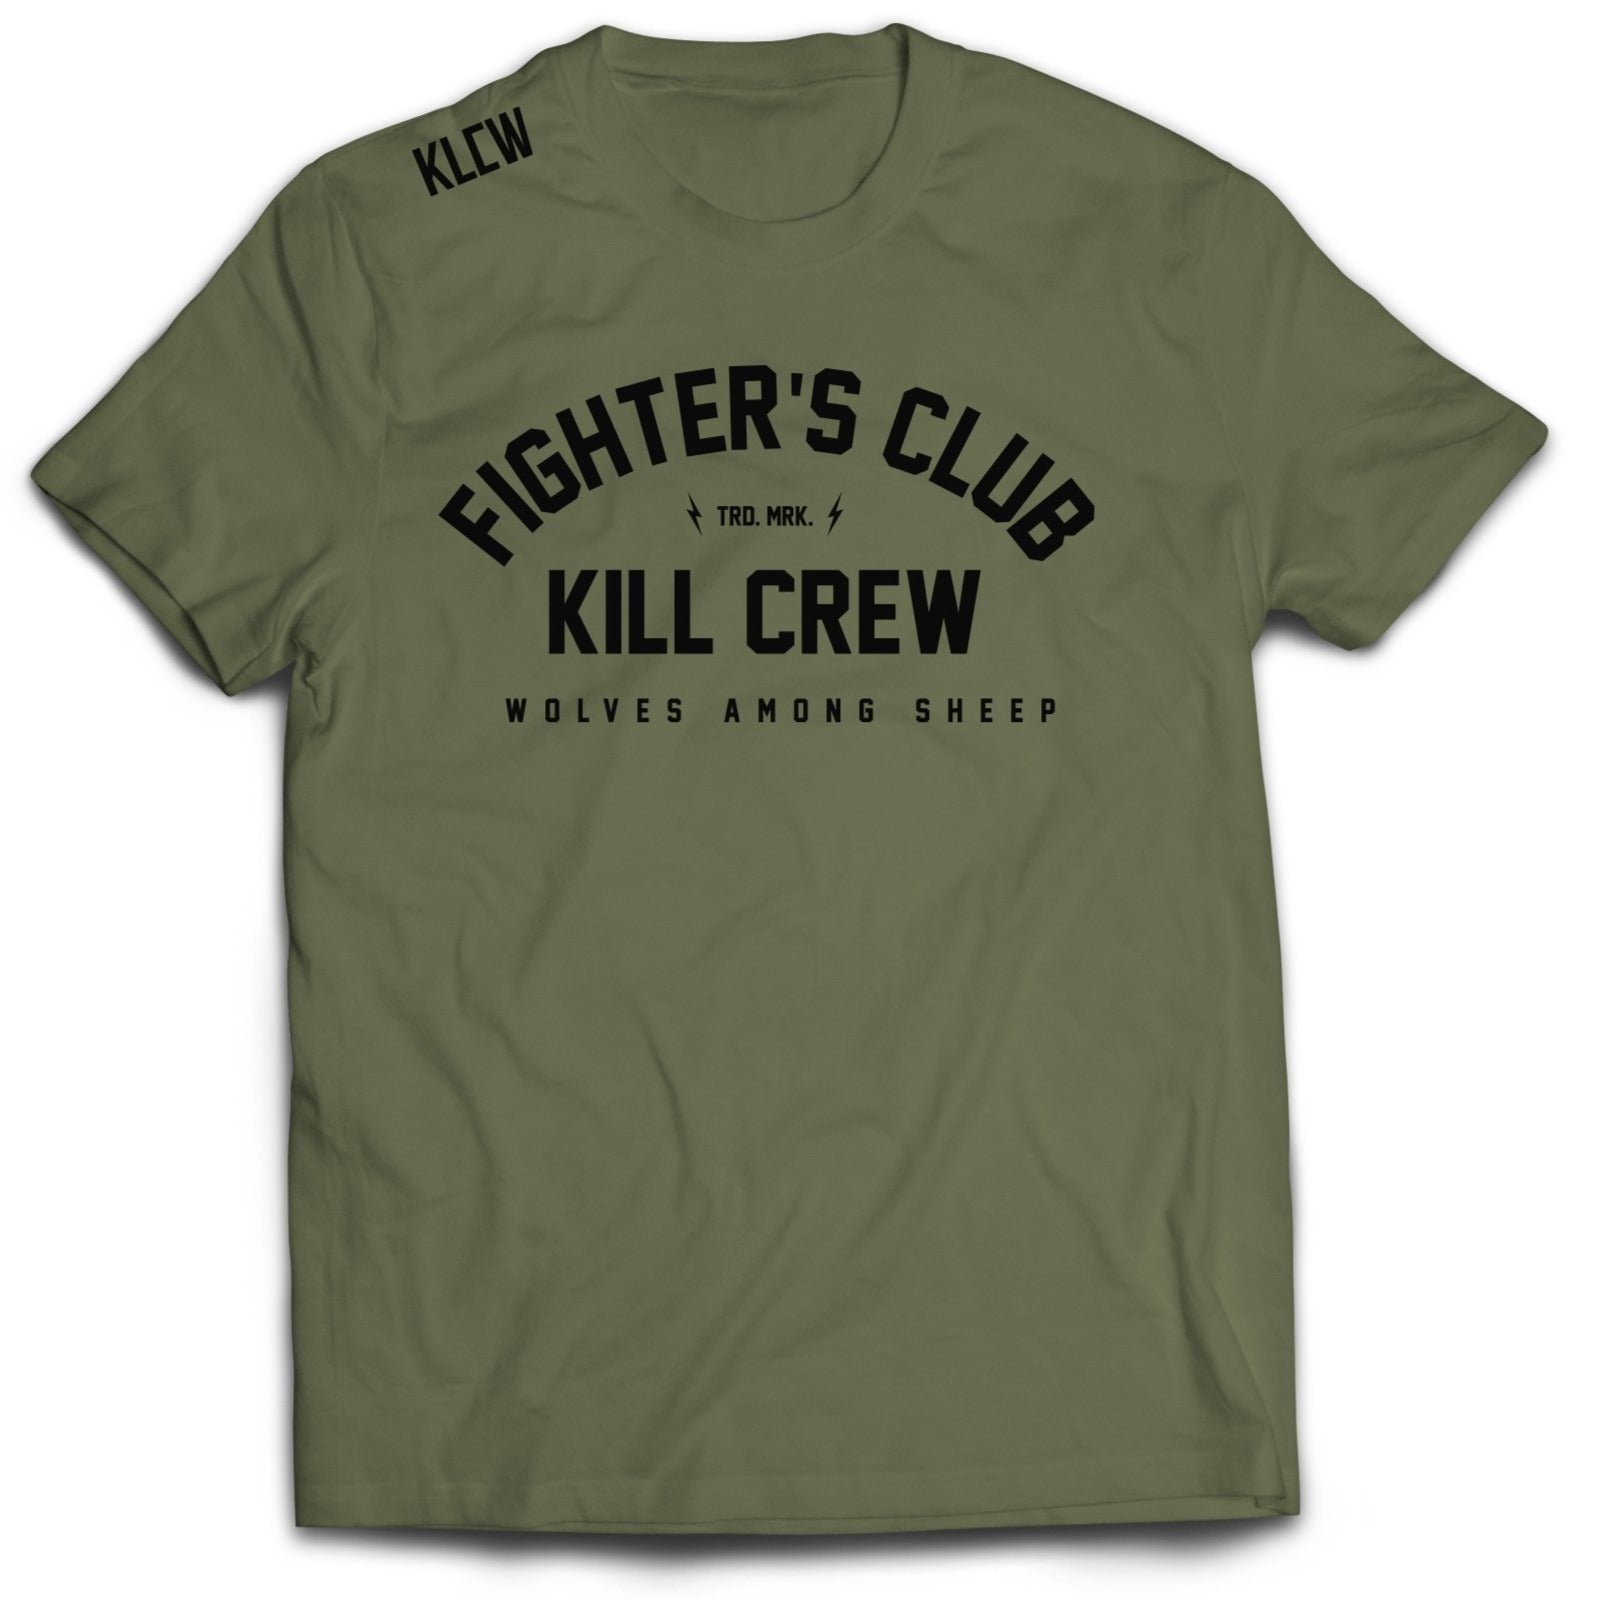 FIGHTER'S CLUB T-SHIRT - OLIVE